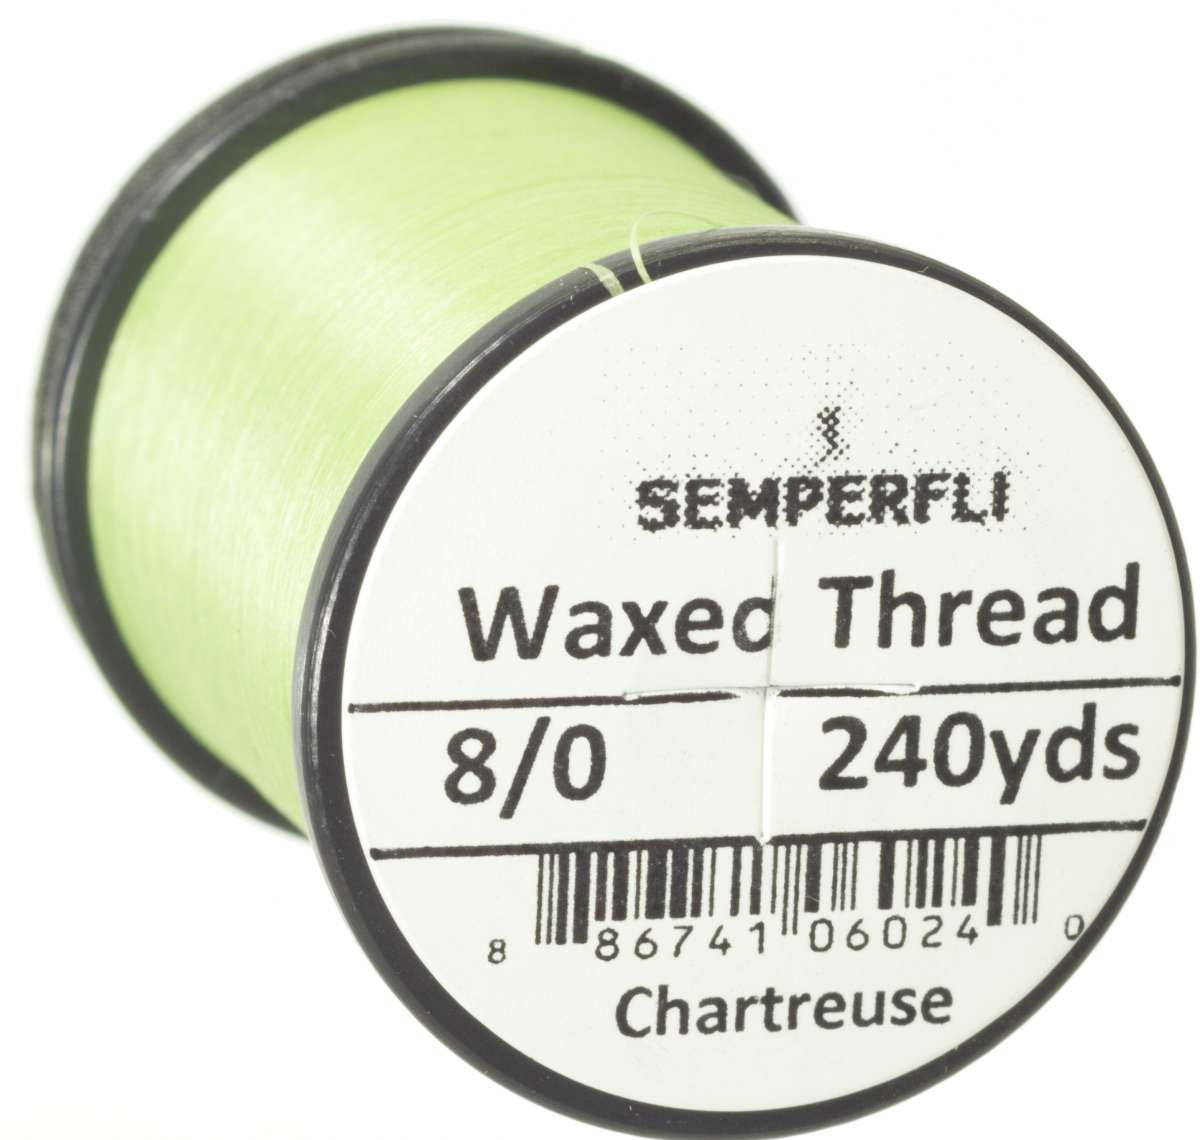 8/0 Classic Waxed Thread Chartreuse Sem-0400-1848